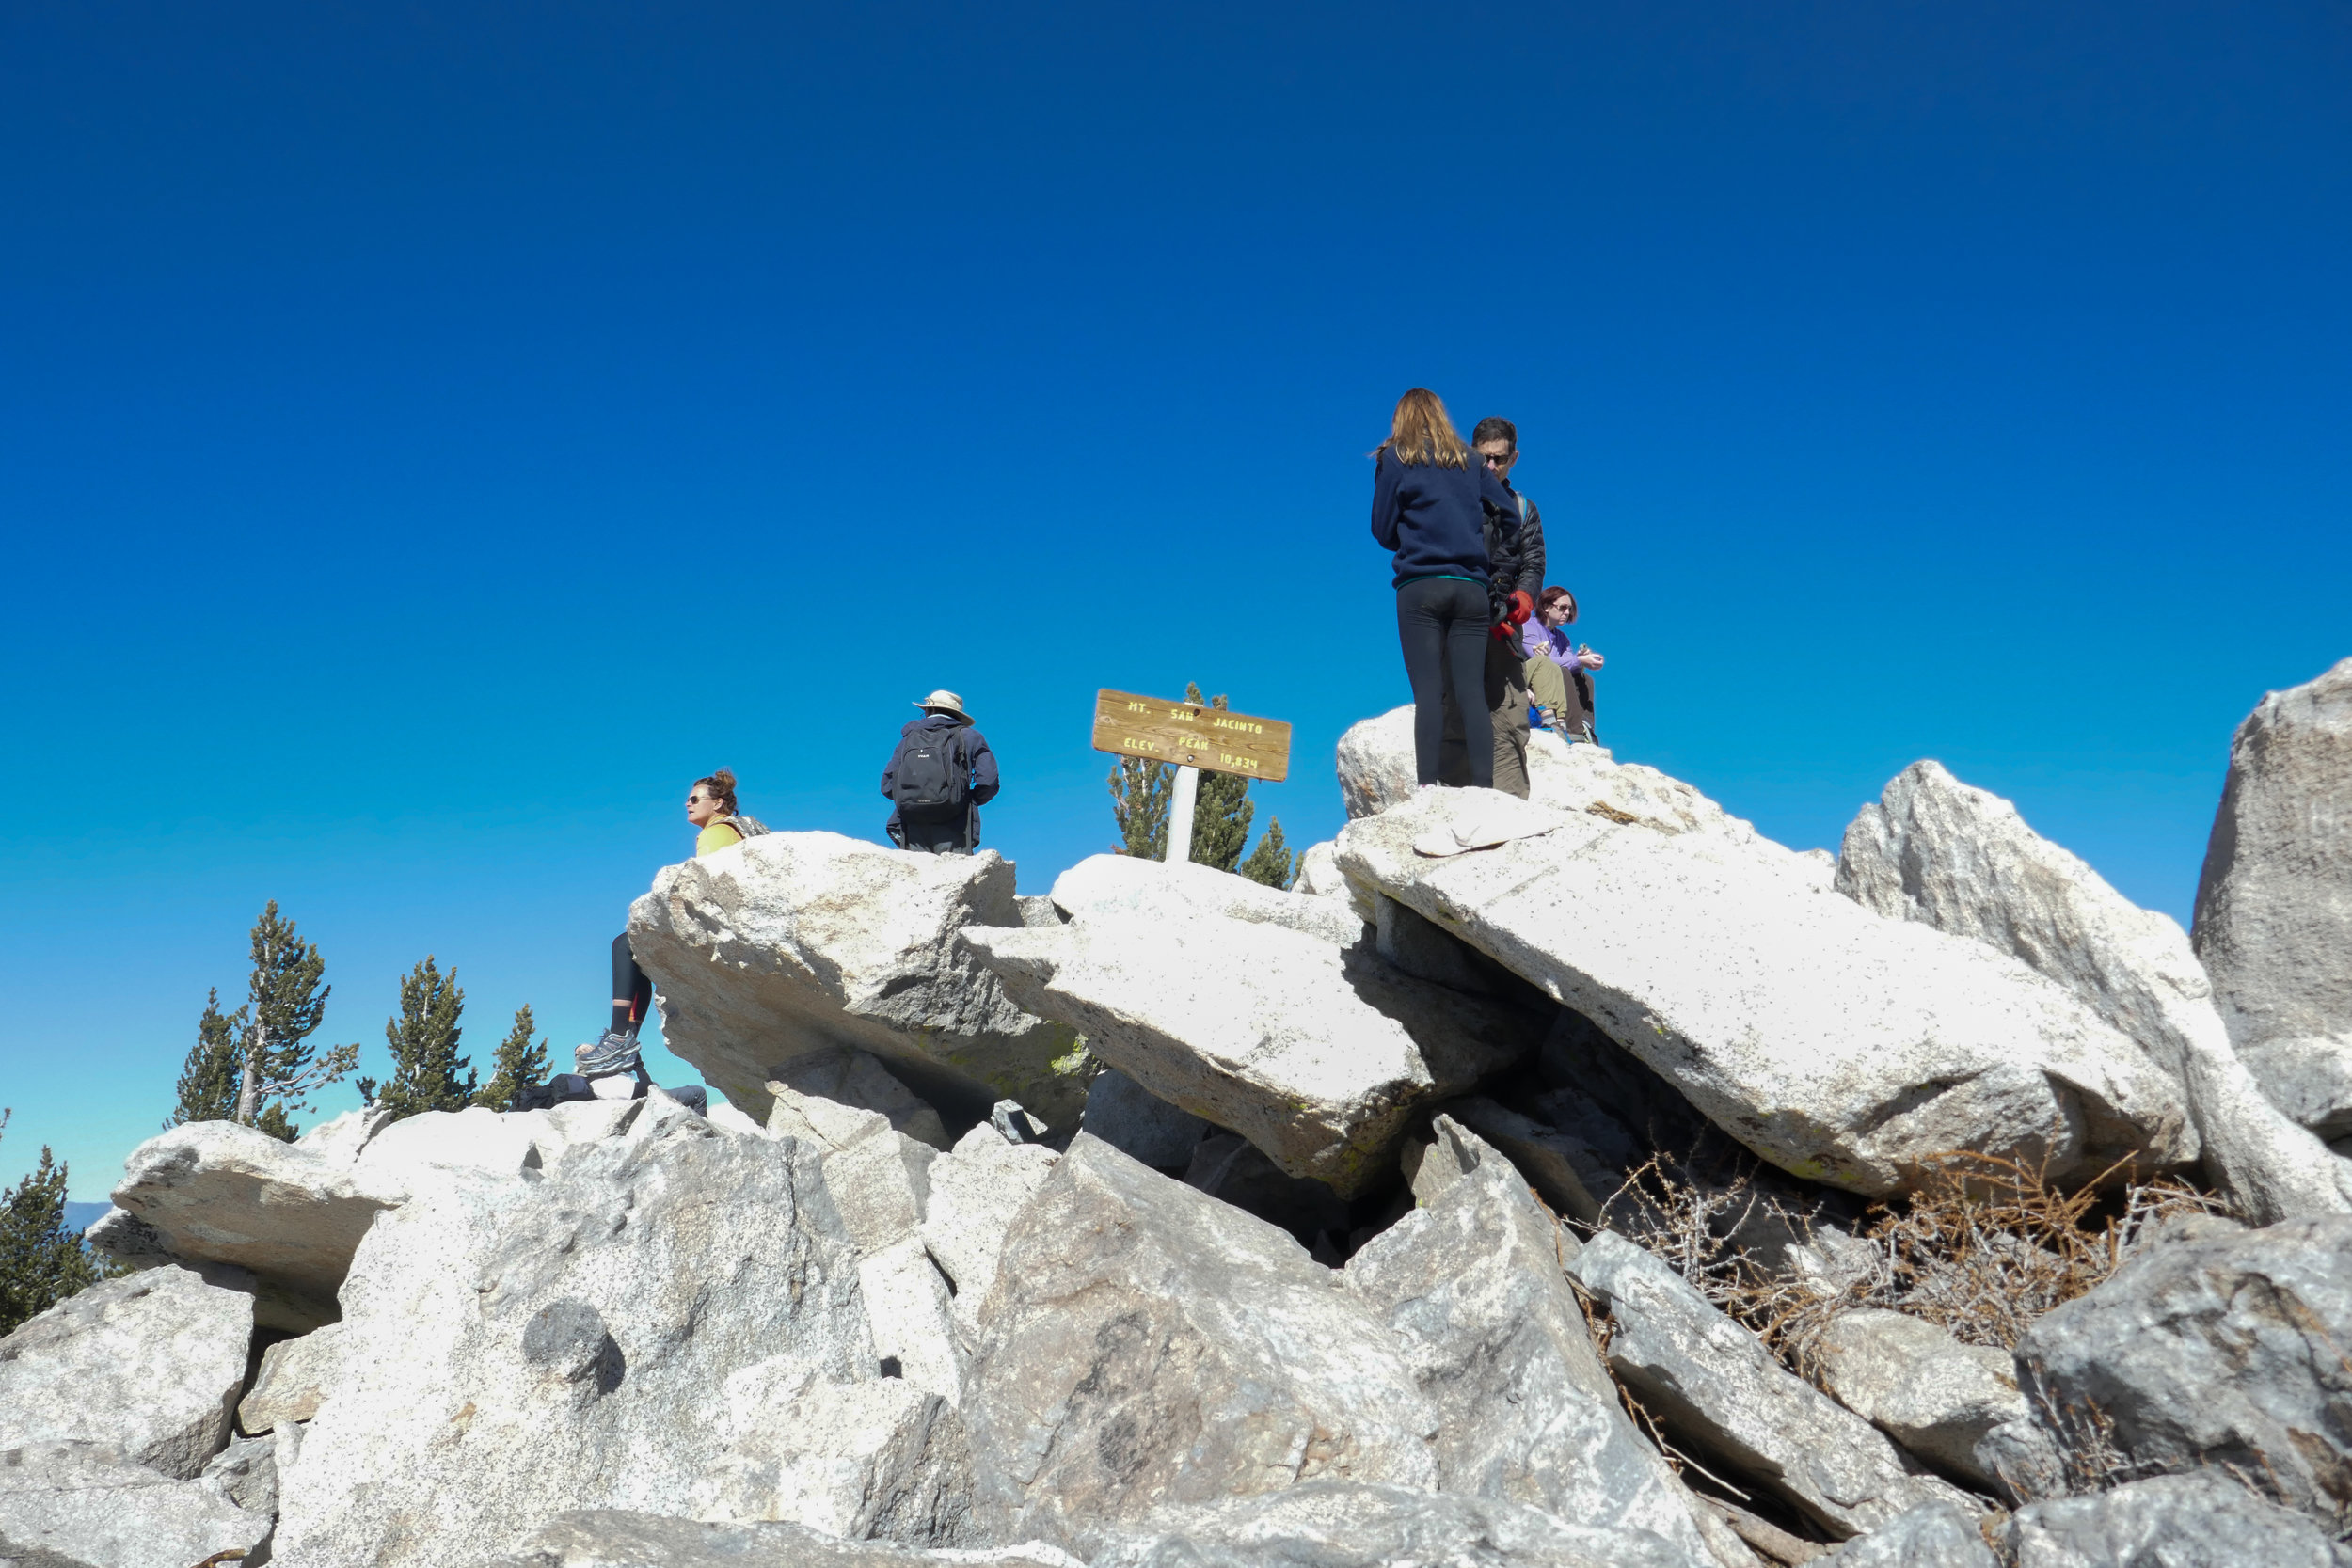 People hanging out at the summit sign getting their pictures. The views from up there were pretty incredible.